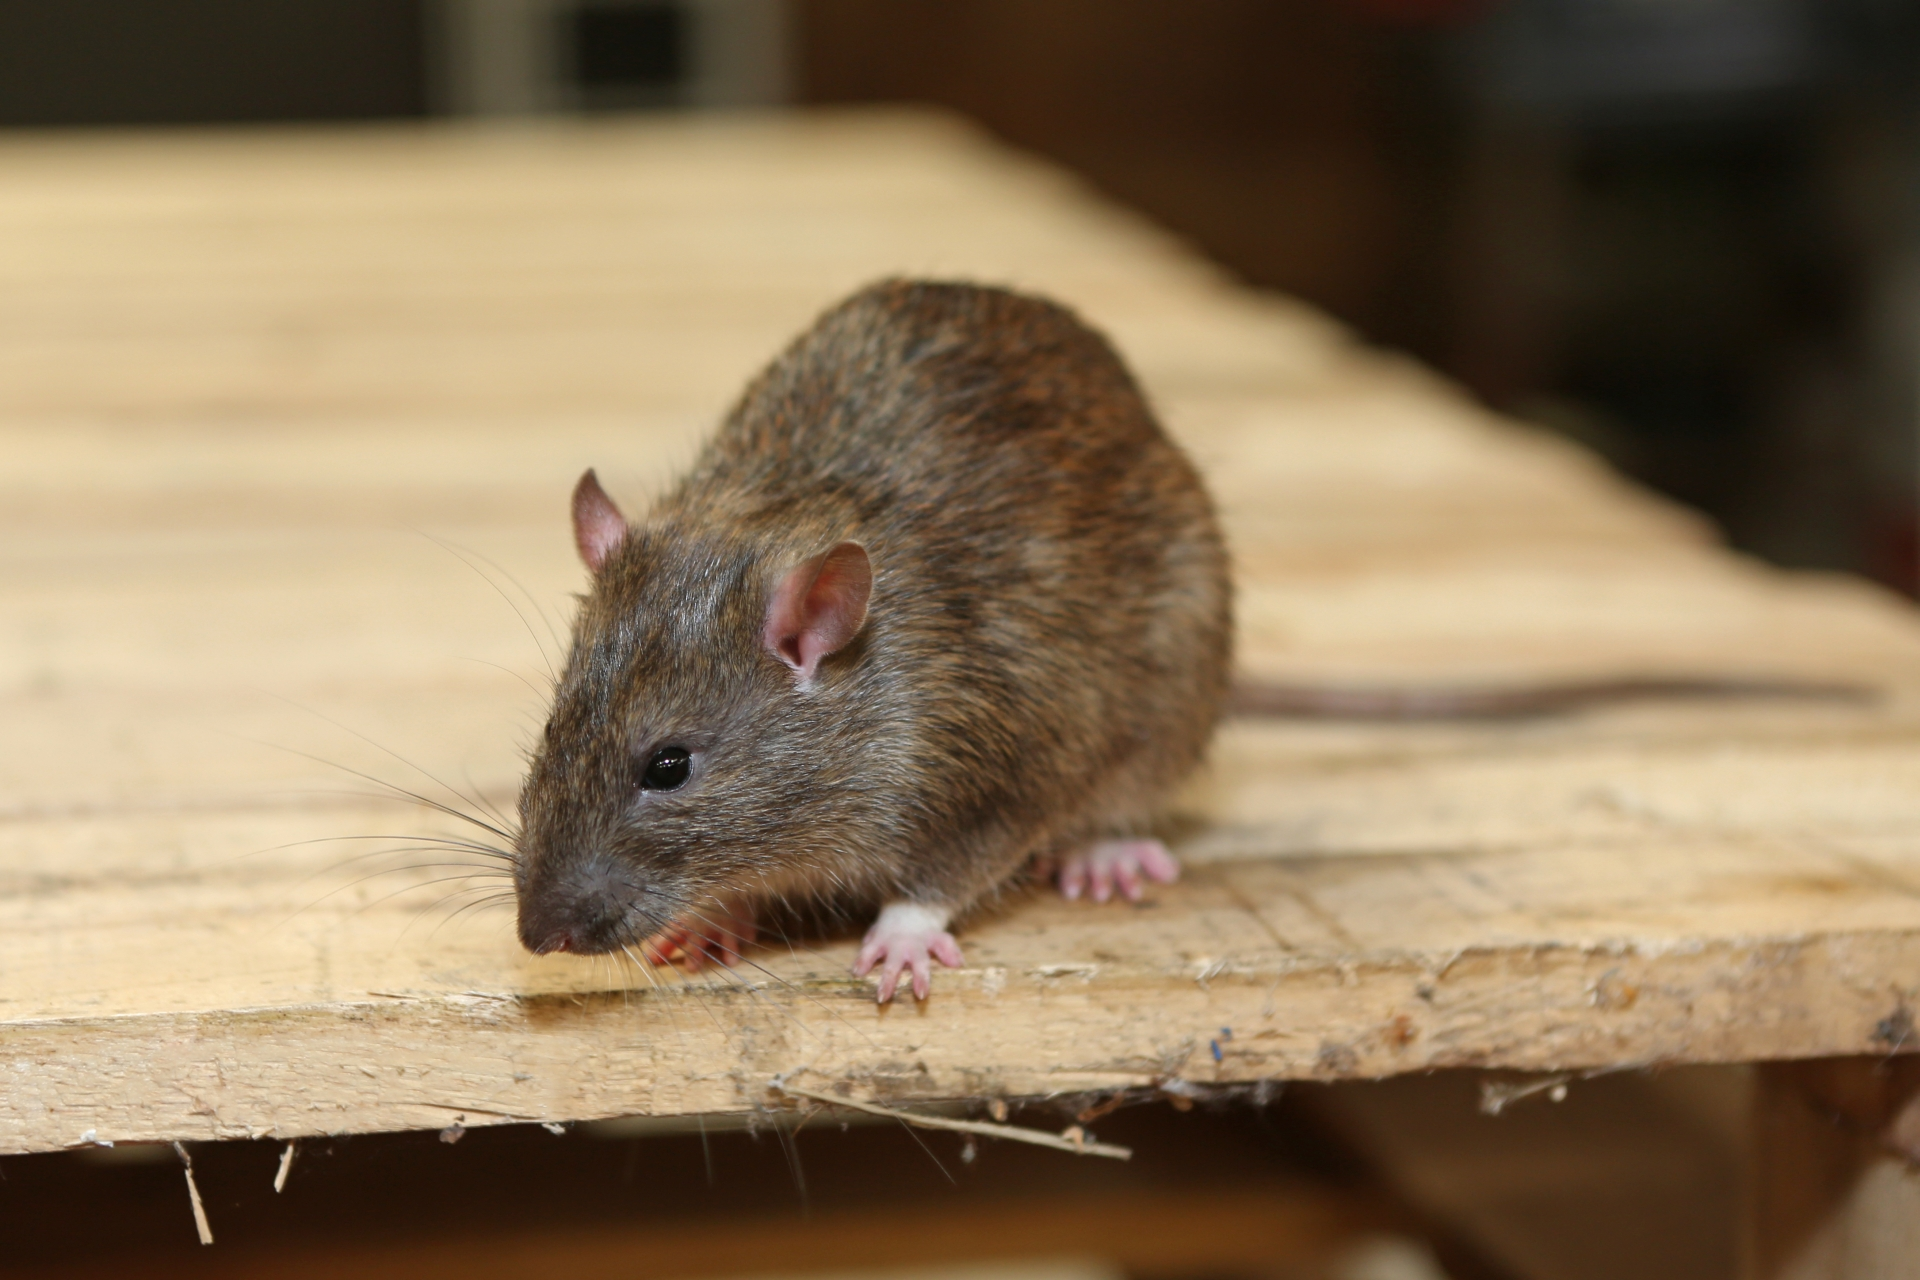 Rat Control, Pest Control in Buckhurst Hill, IG9. Call Now 020 8166 9746